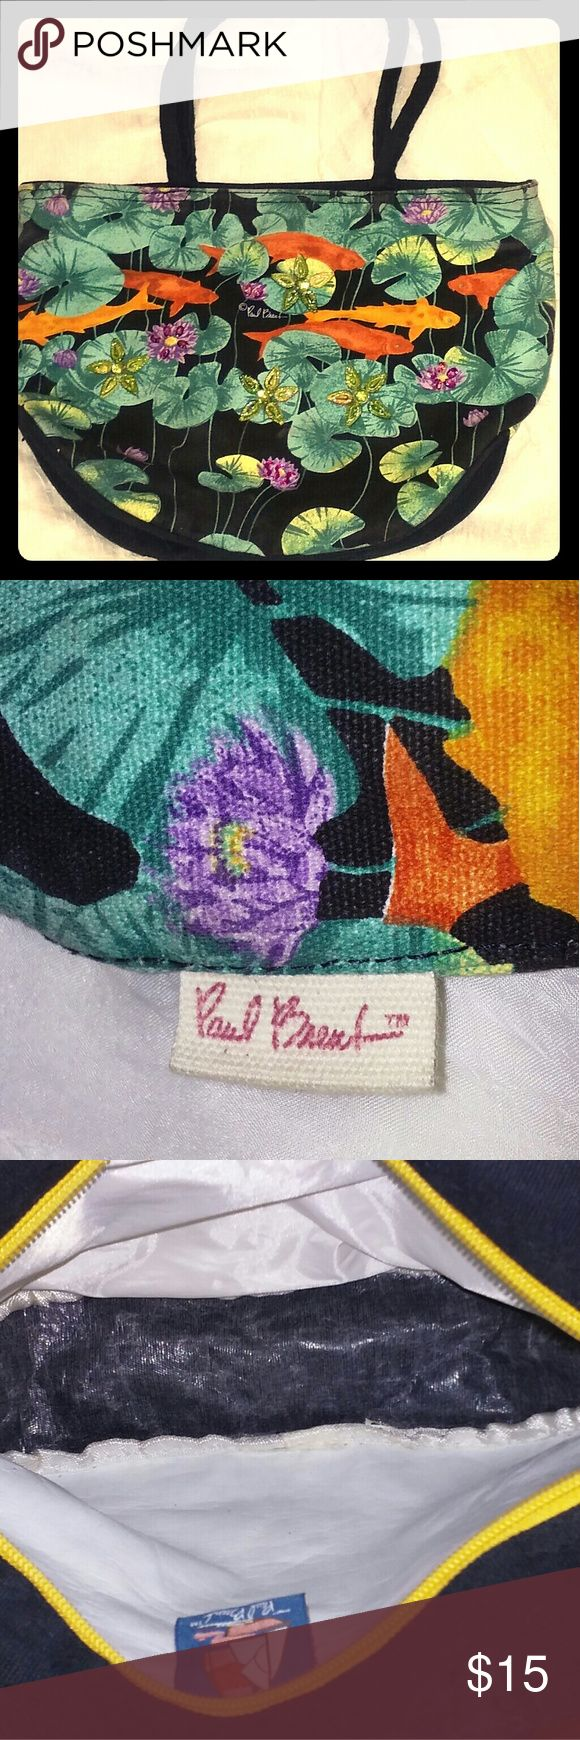 """Paul Brent handbag One of Paul Brent's fun totes just in time for spring. Orange Koi fish in a lily pond covers both front and back. Koi fish are a common symbol in both Chinese culture and feng shui. Ornamental green and purple Jewel flowers on the front. Inside is clean and material is canvas on one side and satin 'like' on the other. Has orange zipper to close bag. Minimal ware and tear. 14""""x3""""x10"""" = LxWxH Paul Brent  Bags Totes"""